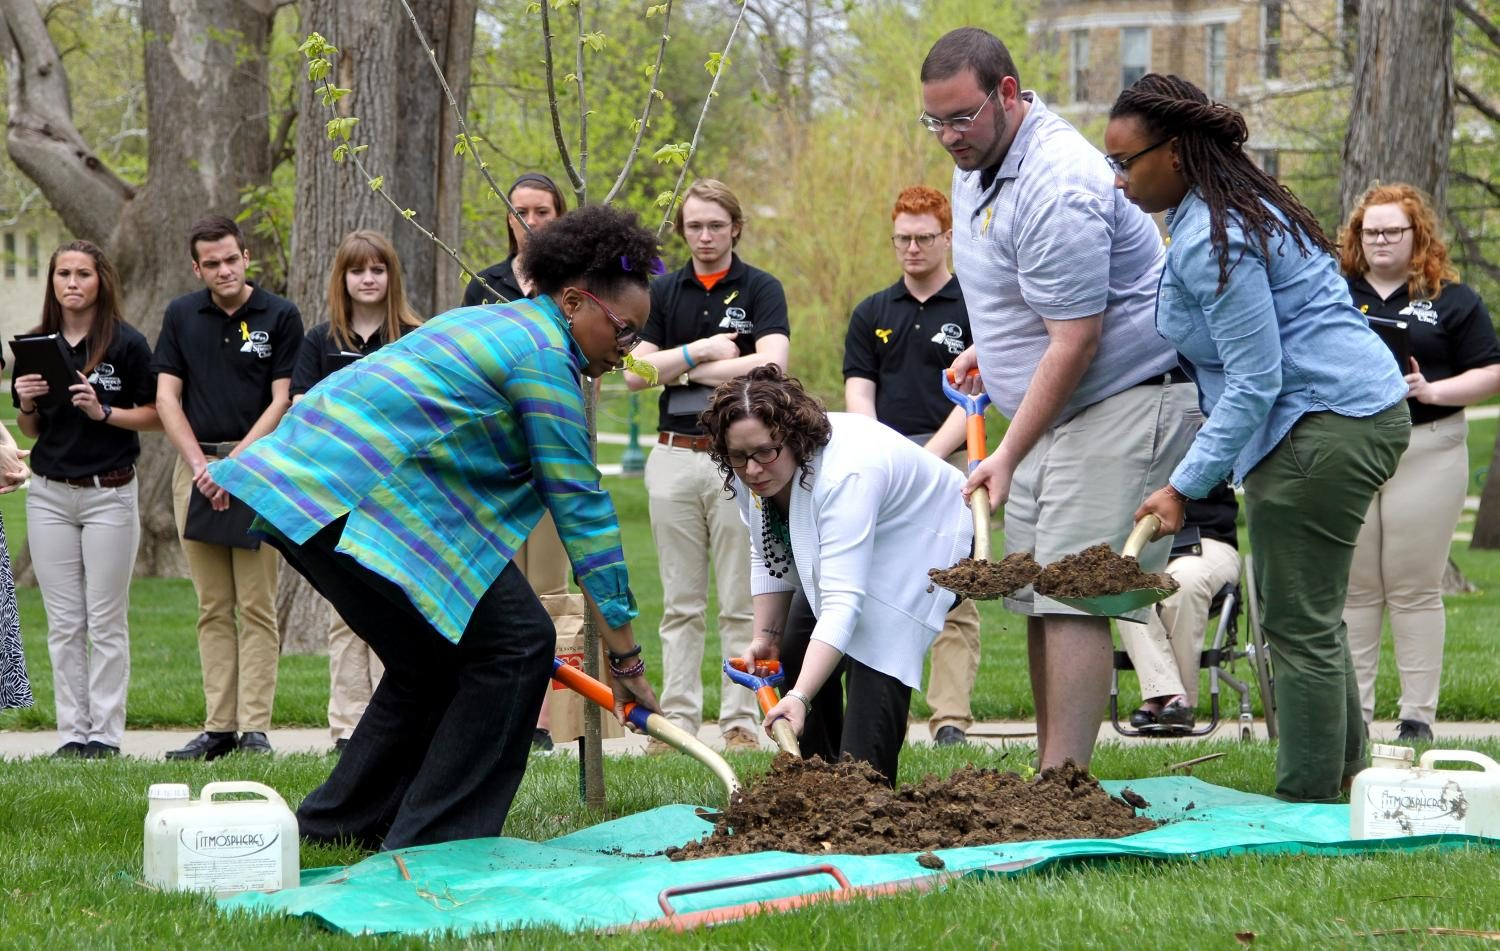 Baker faculty shovel soil during a memorial tree planting ceremony after a chapel service on April 23 in memory of Sione Maumau who passed away the previous semester. Documenting this event, as well anything else surrounding this tragedy, was one of the hardest things I've had to do in my career as a photographer. Nobody wants to be the one to photograph something like this, but at the same time I felt like it was my duty to showcase how the Baker community came together and came back stronger than ever before because of it.